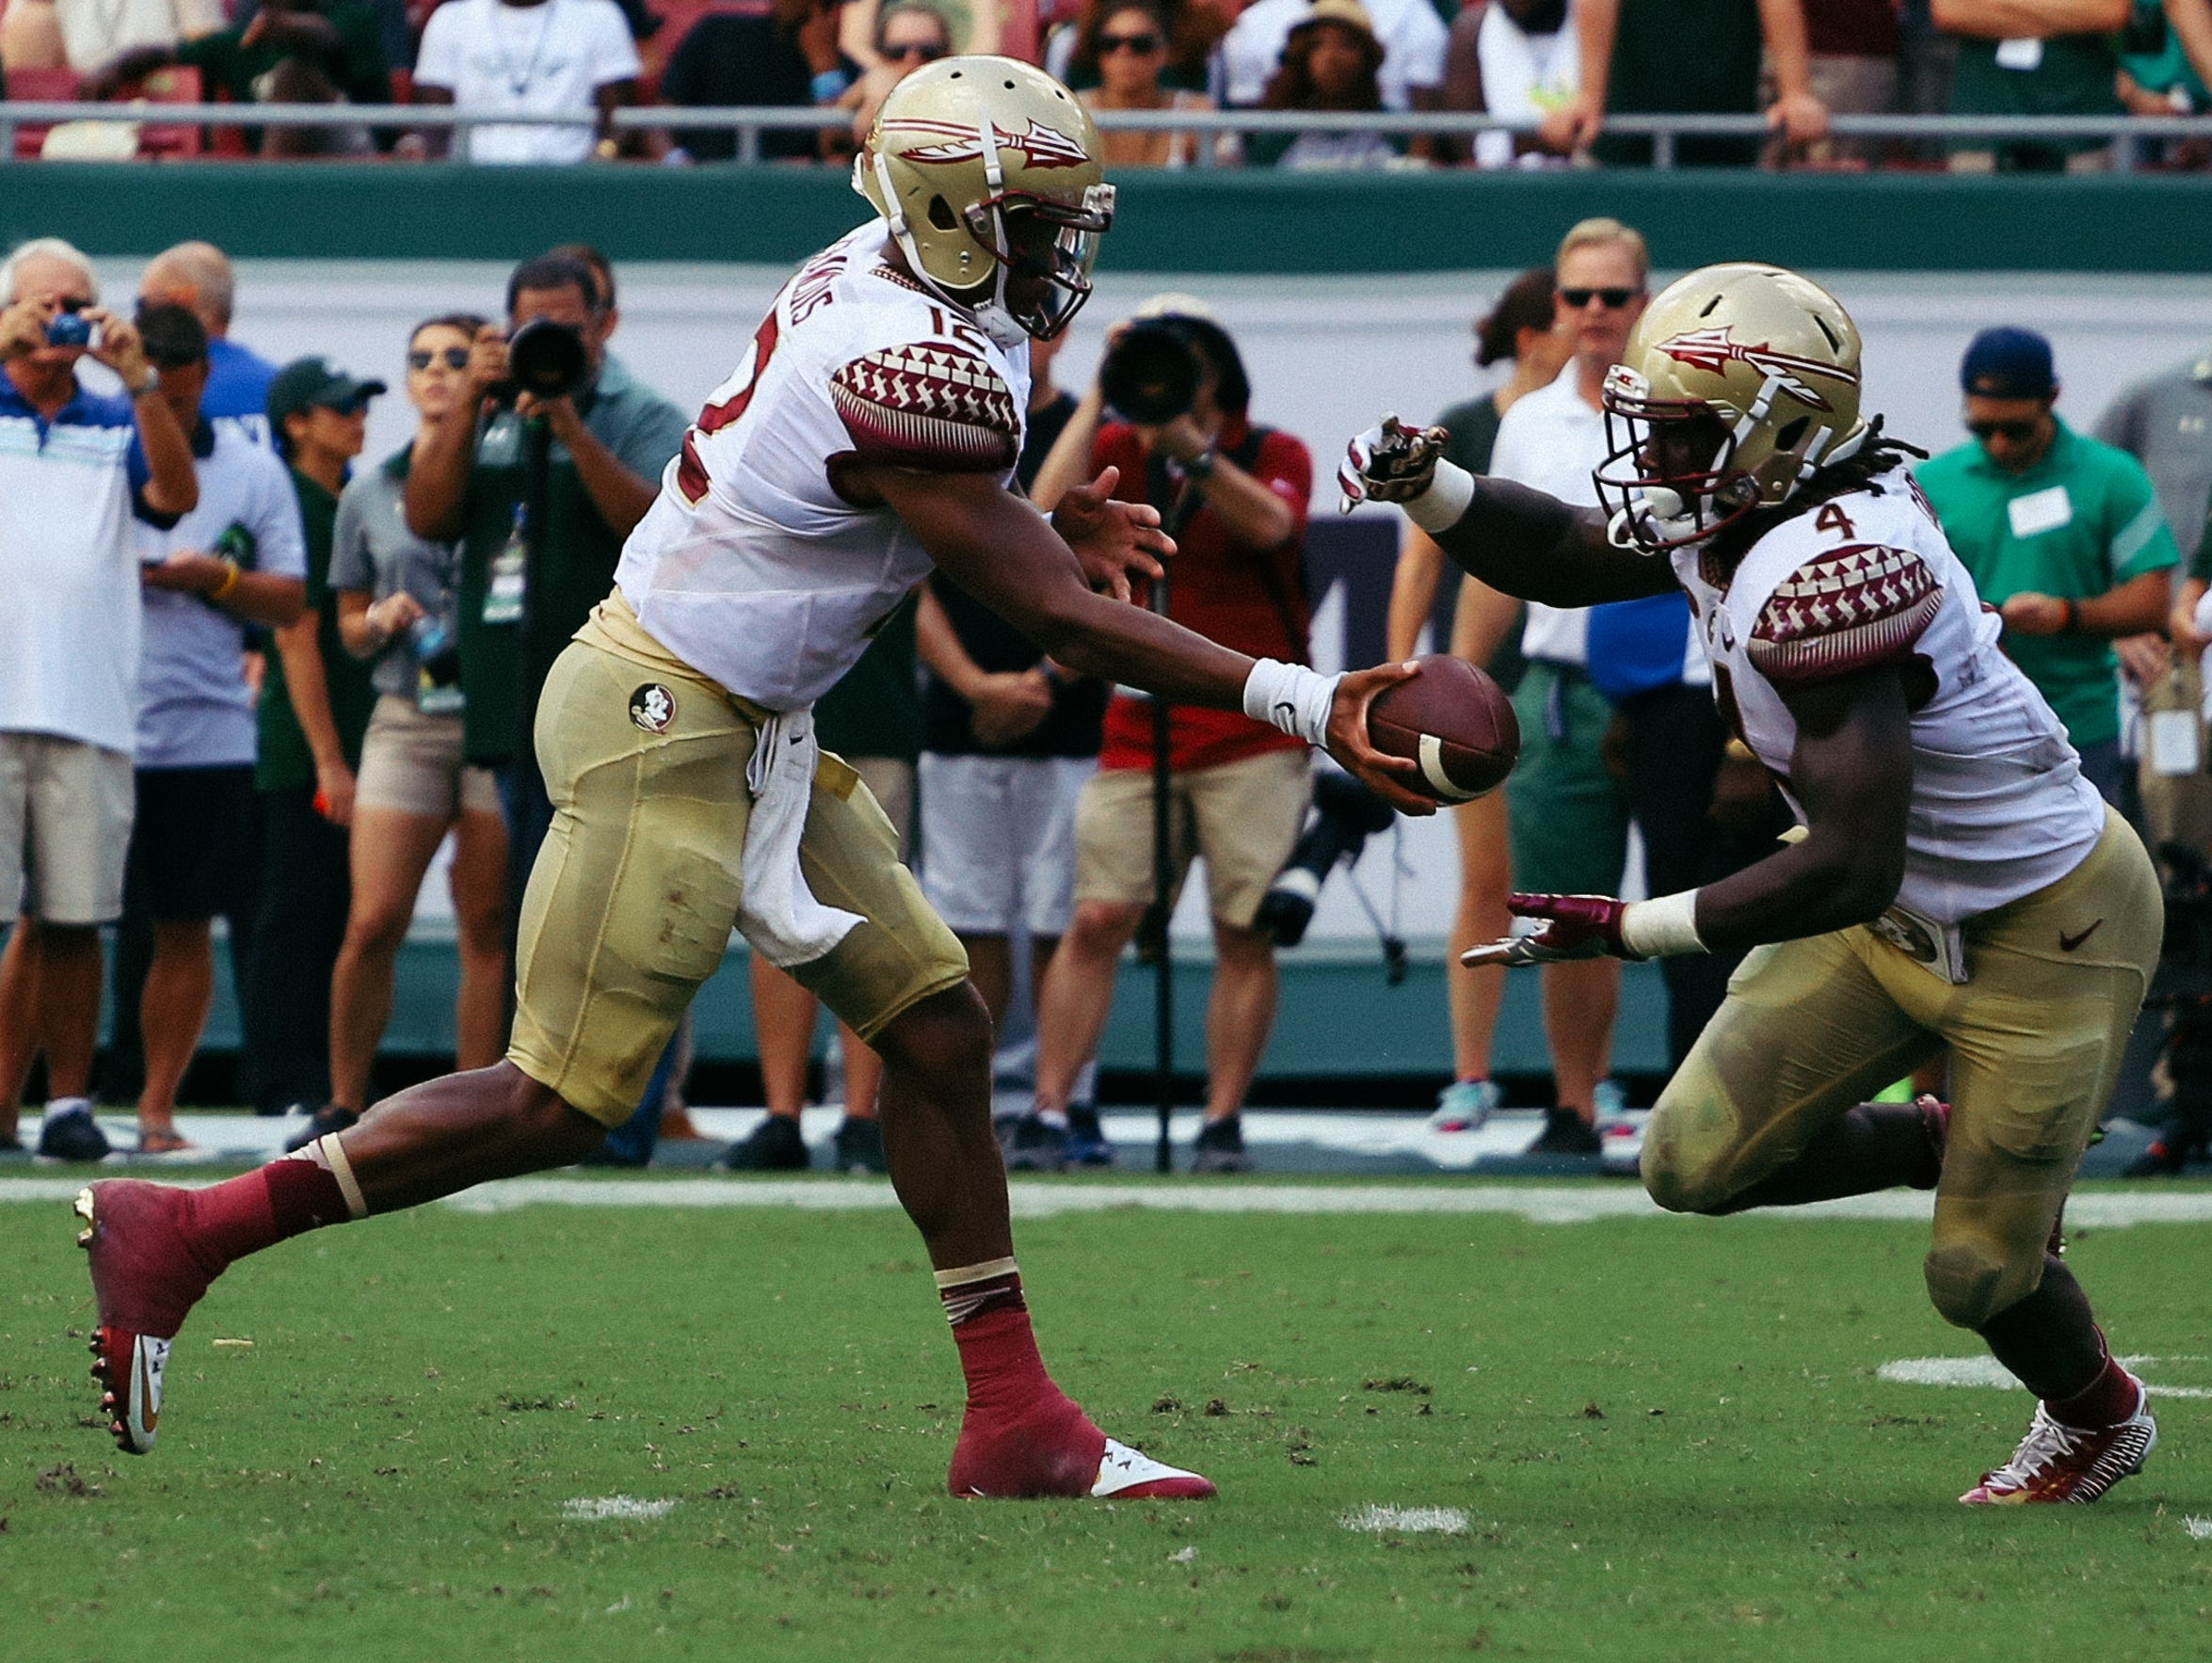 Deondre Francois (12) hands the ball off to Dalvin